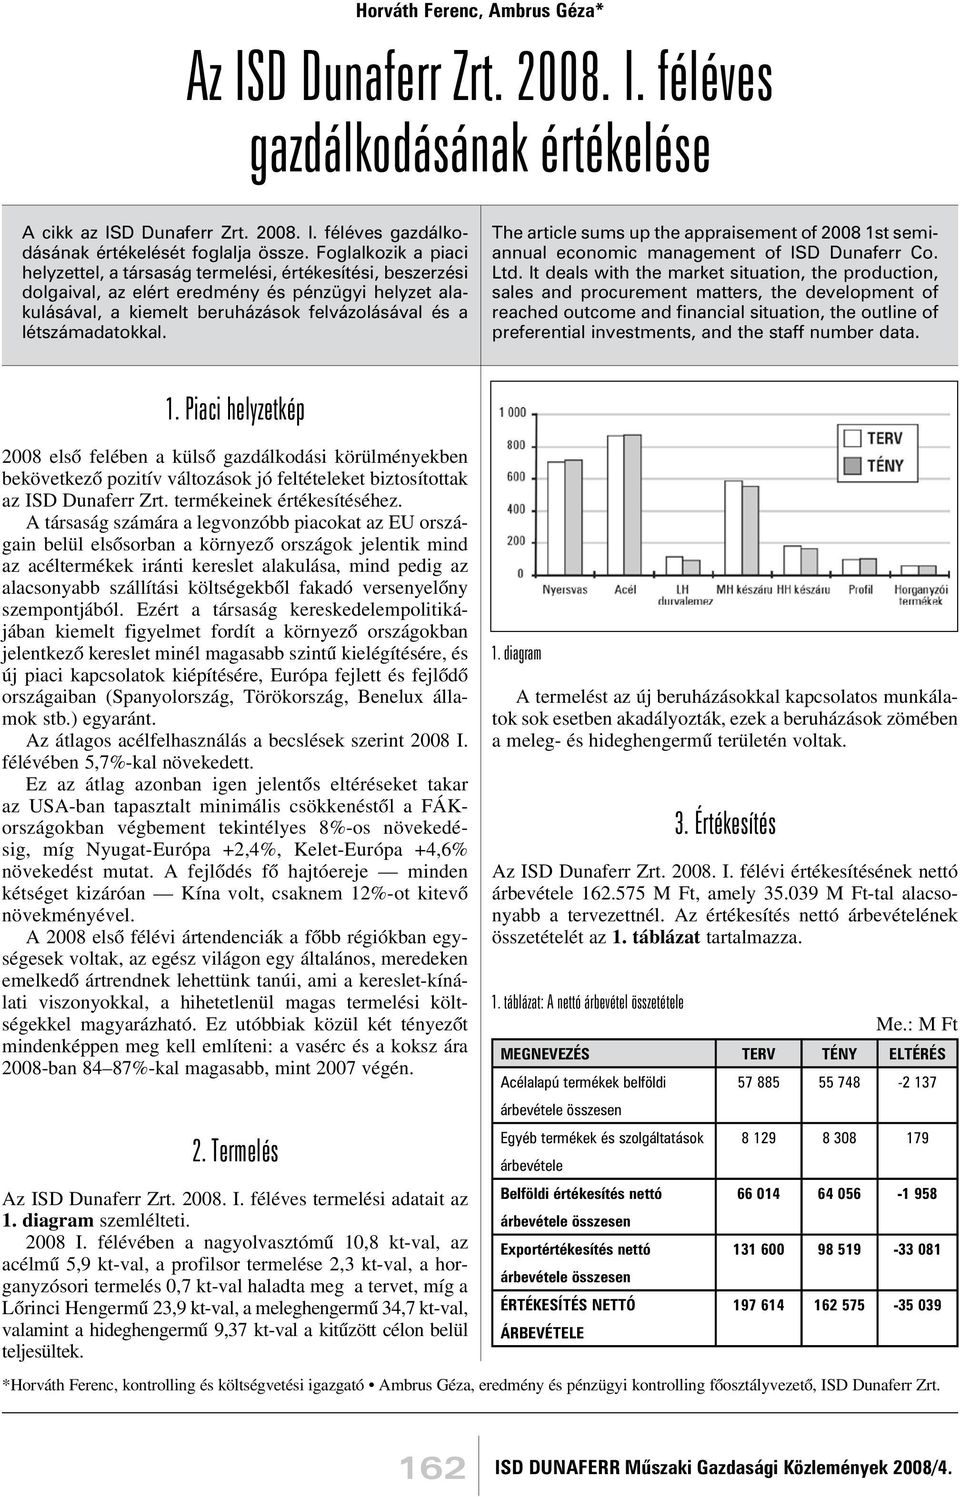 létszámadatokkal. The article sums up the appraisement of 2008 1st semiannual economic management of ISD Dunaferr Co. Ltd.